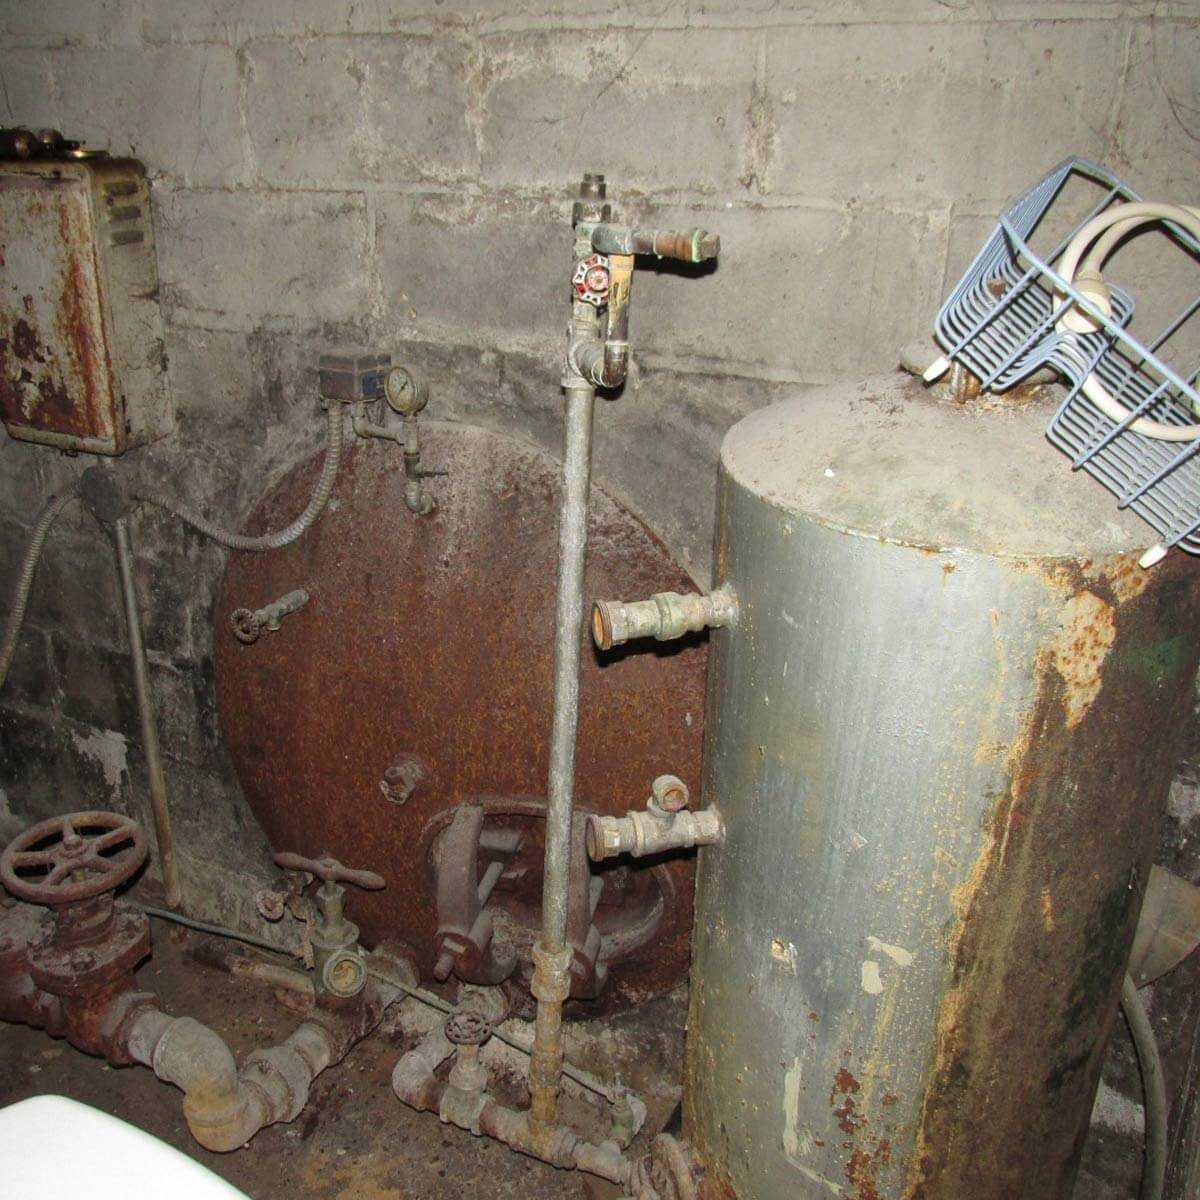 The Addam's family utility room